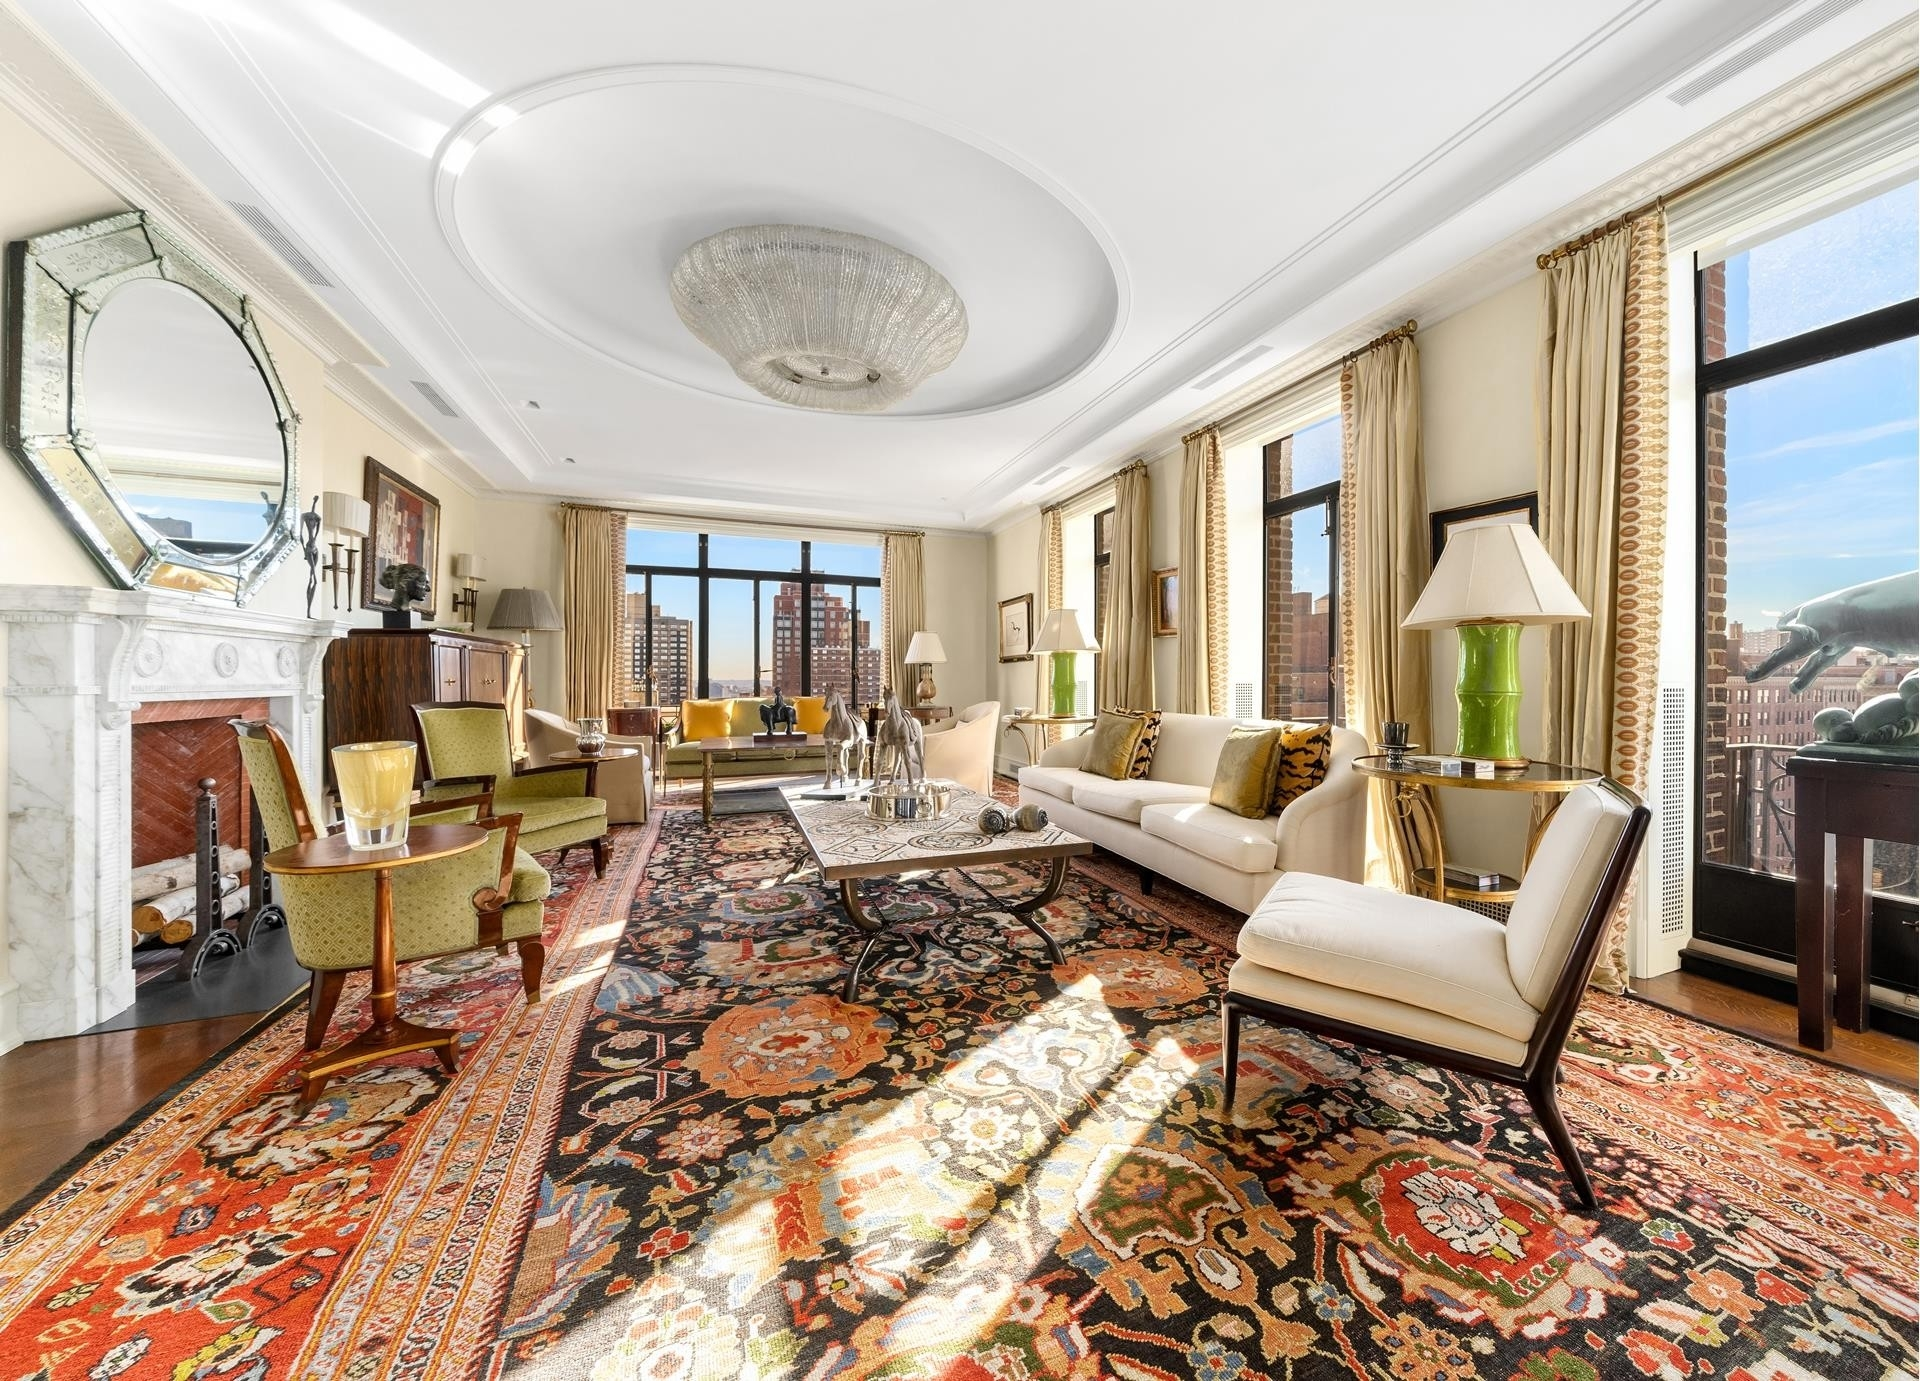 Property в 1220 Park Avenue, PHB Carnegie Hill, New York, NY 10128